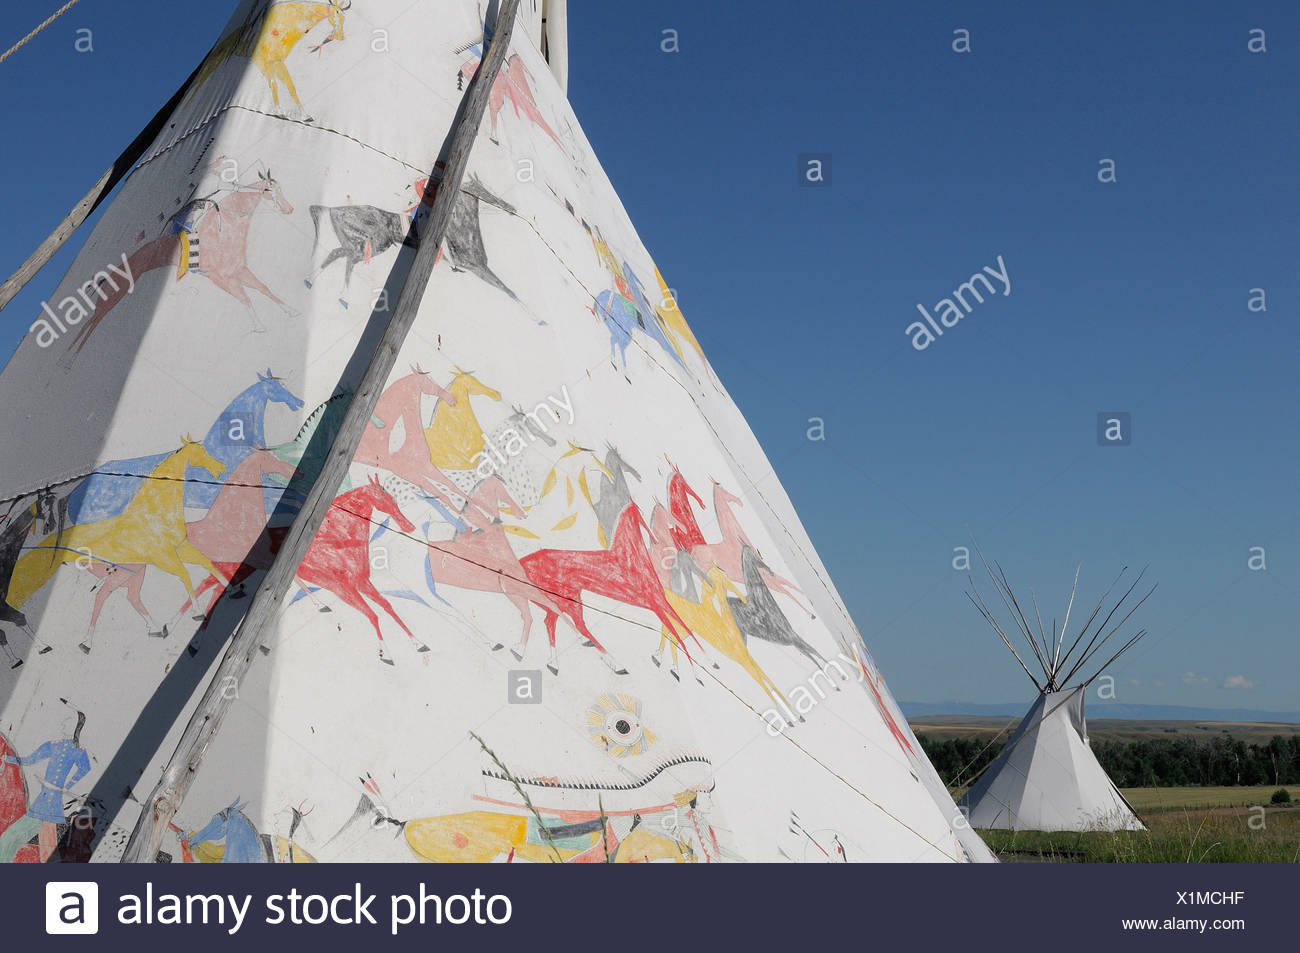 Tipi Custer Battlefield Trading Post Crow Agency Crow Indian Reservation Montana USA tipi indian - Stock Image